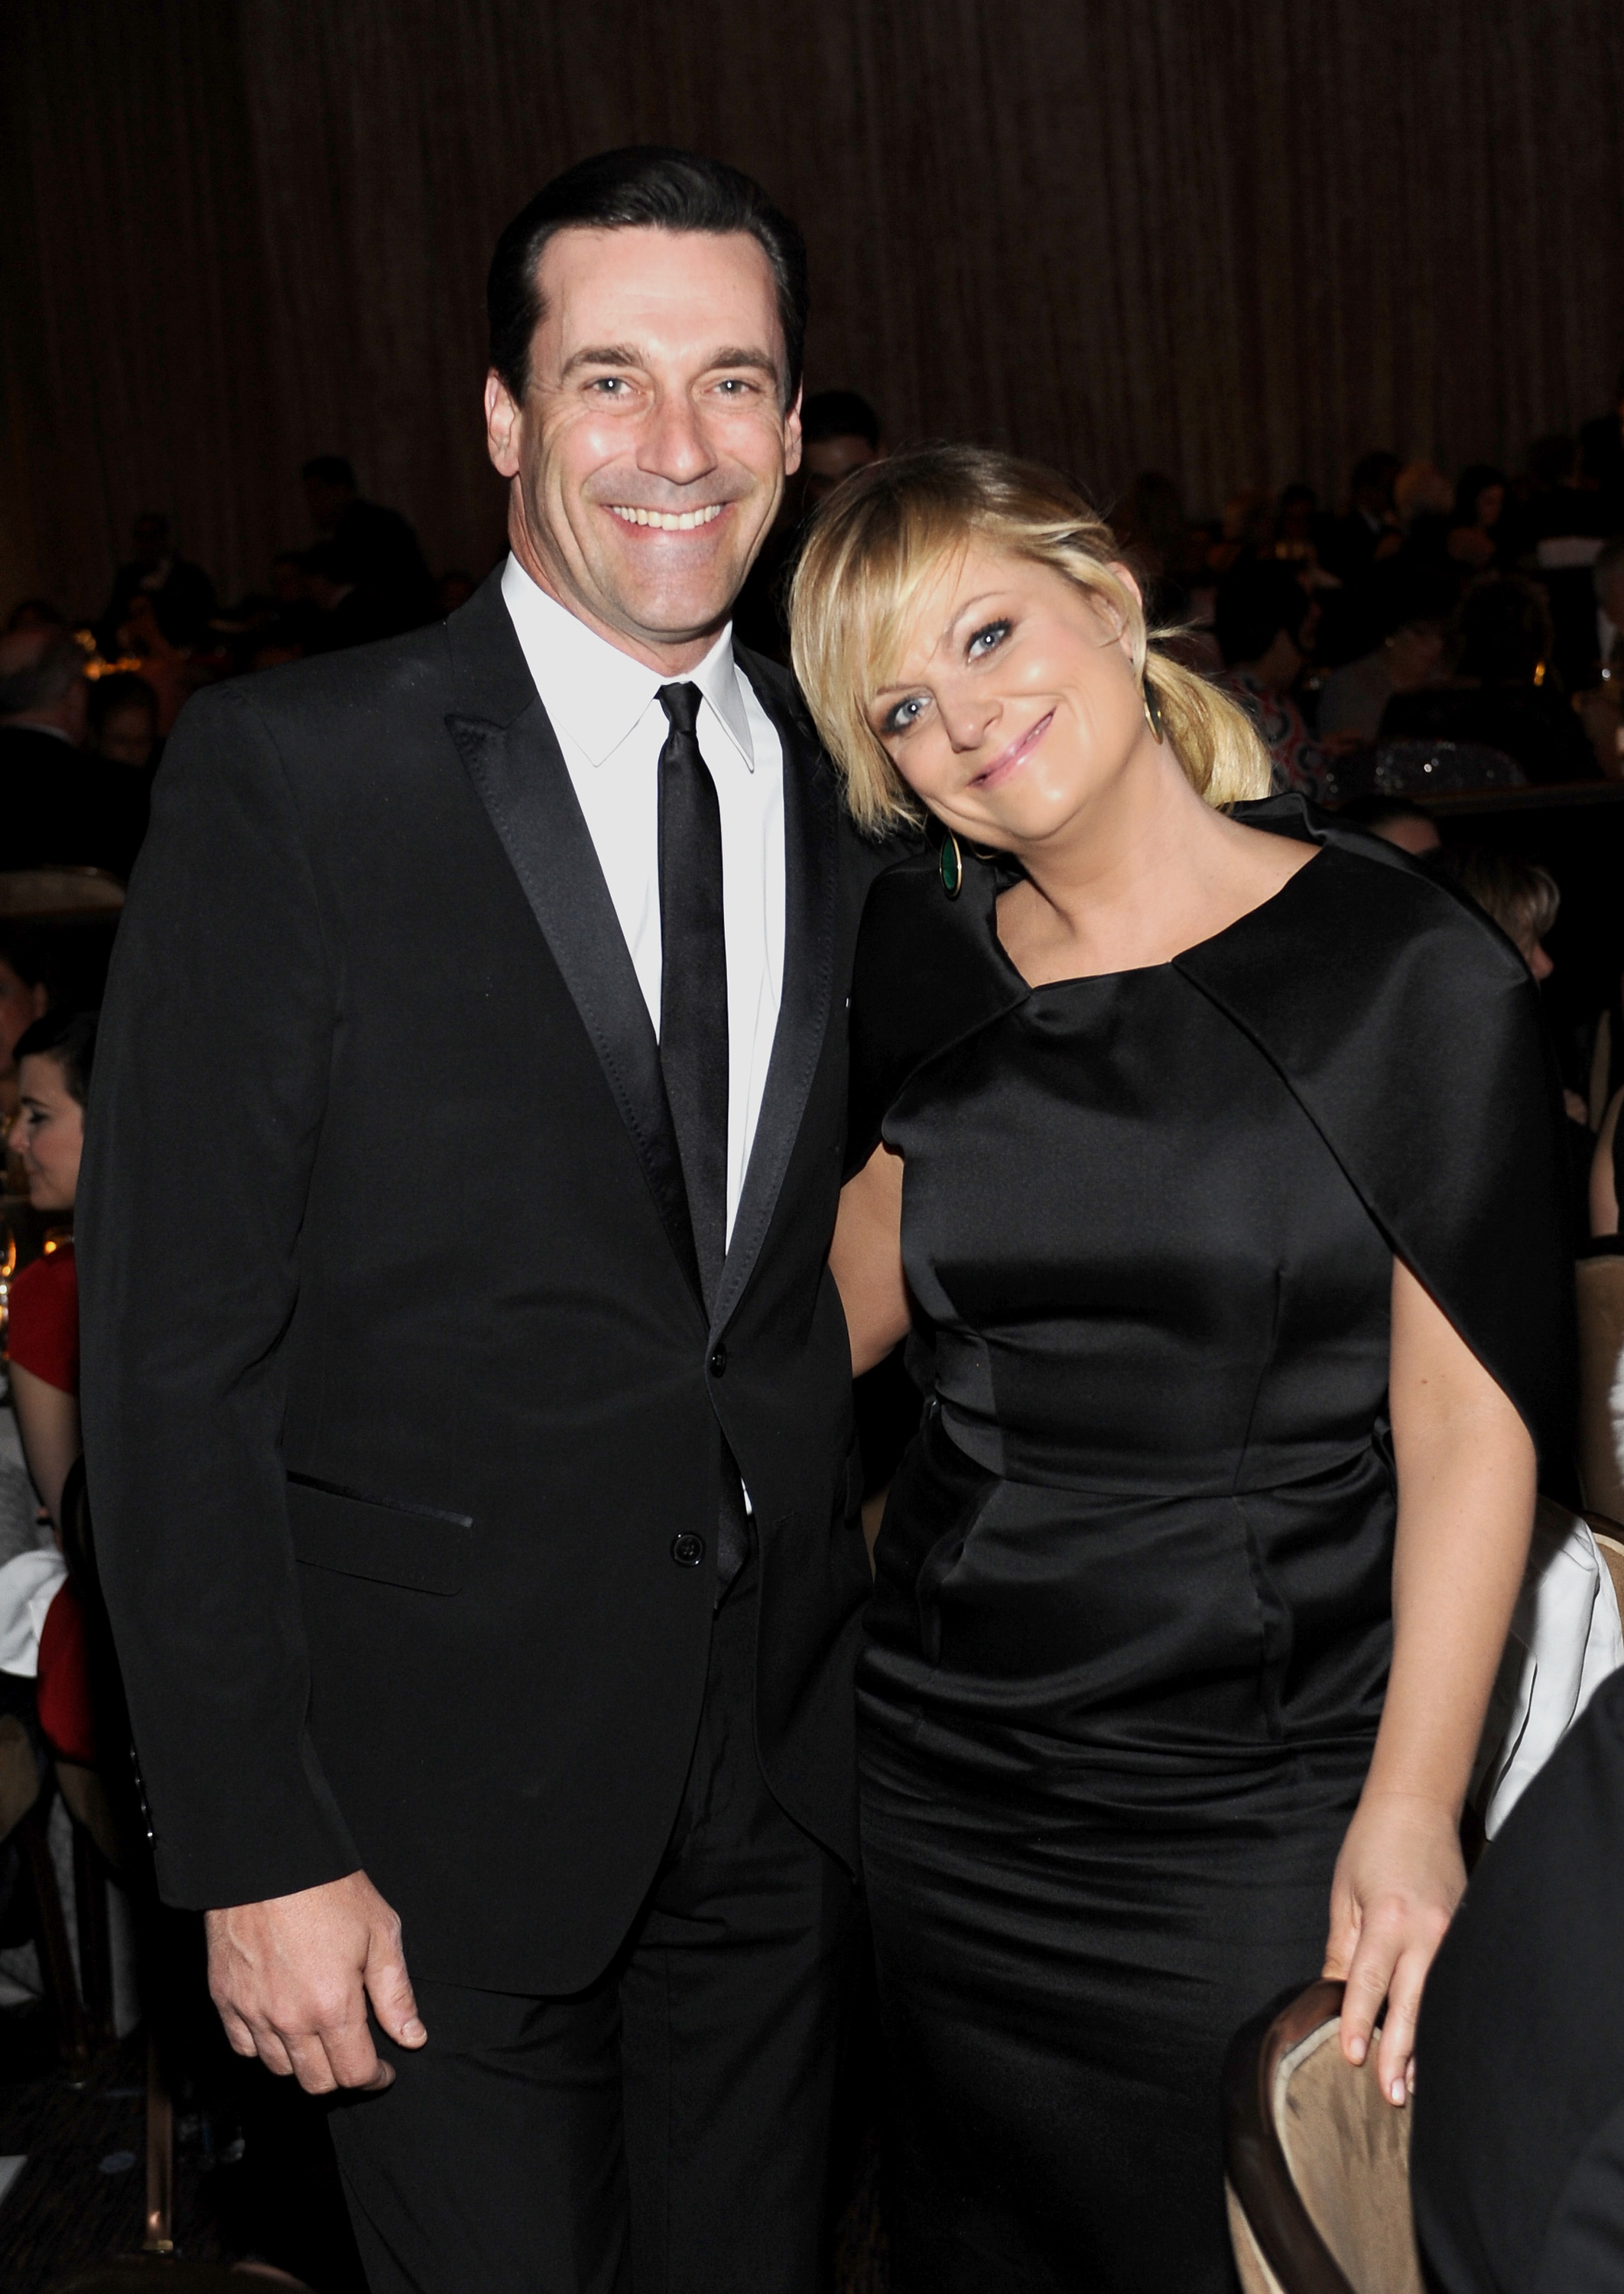 Actors Jon Hamm and Amy Poehler attend the 15th Annual Costume Designers Guild Awards at The Beverly Hilton Hotel on February 19, 2013 in Beverly Hills, California.